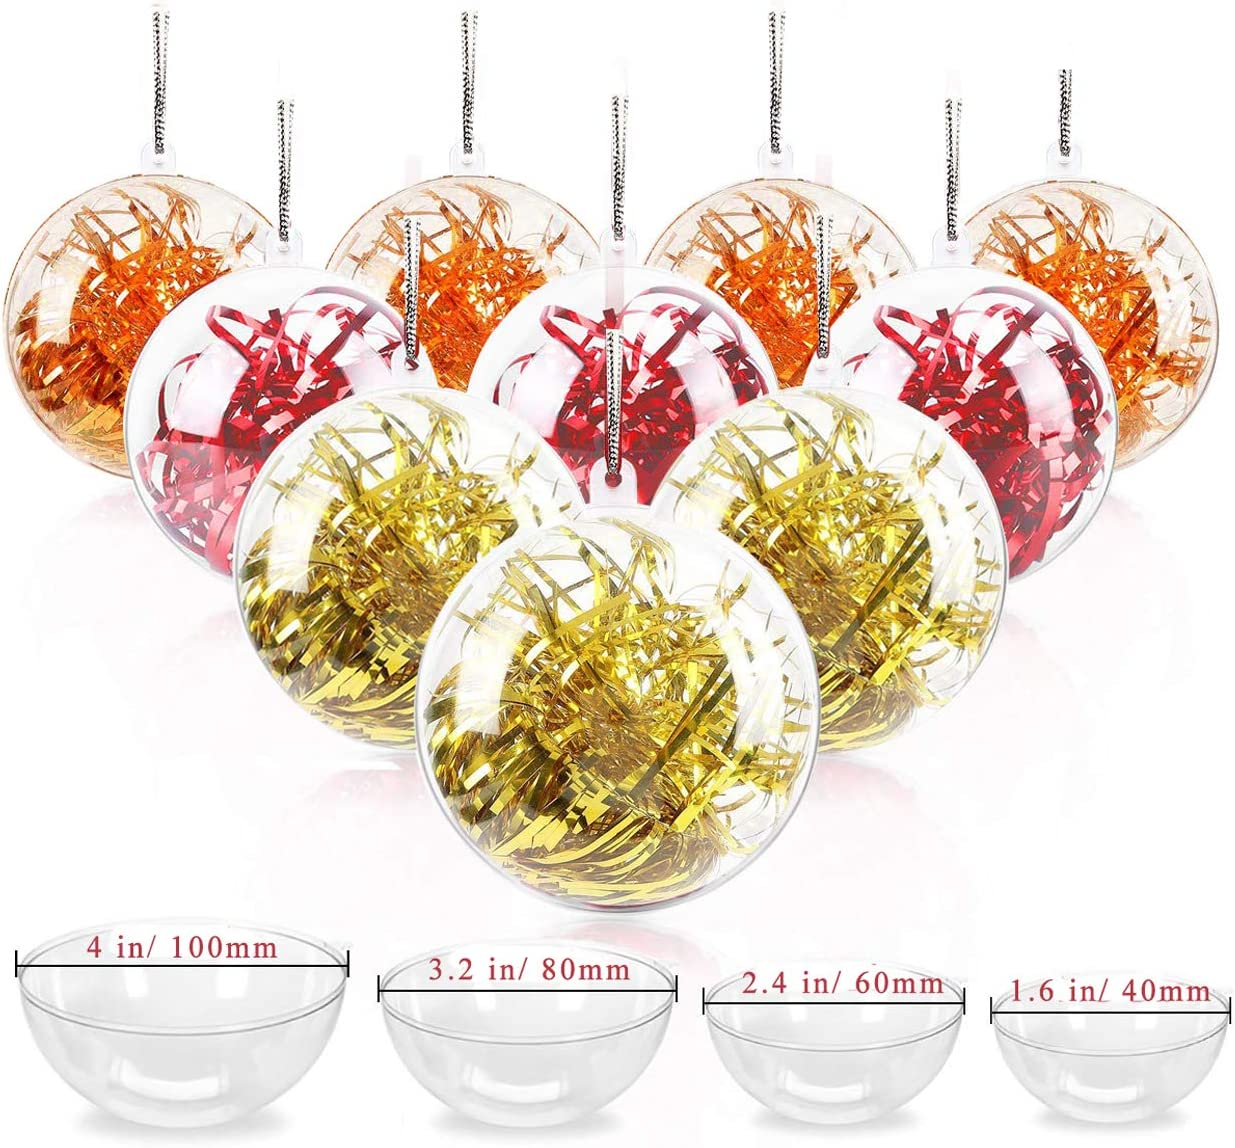 Jangostor 20 Pack Clear Ornaments Balls, 40, 60, 80, 100mm Christmas Ornaments Ball to Fill, DIY Plastic Fillable Christmas Decorations Tree Balls Baubles Craft Transparent Ball